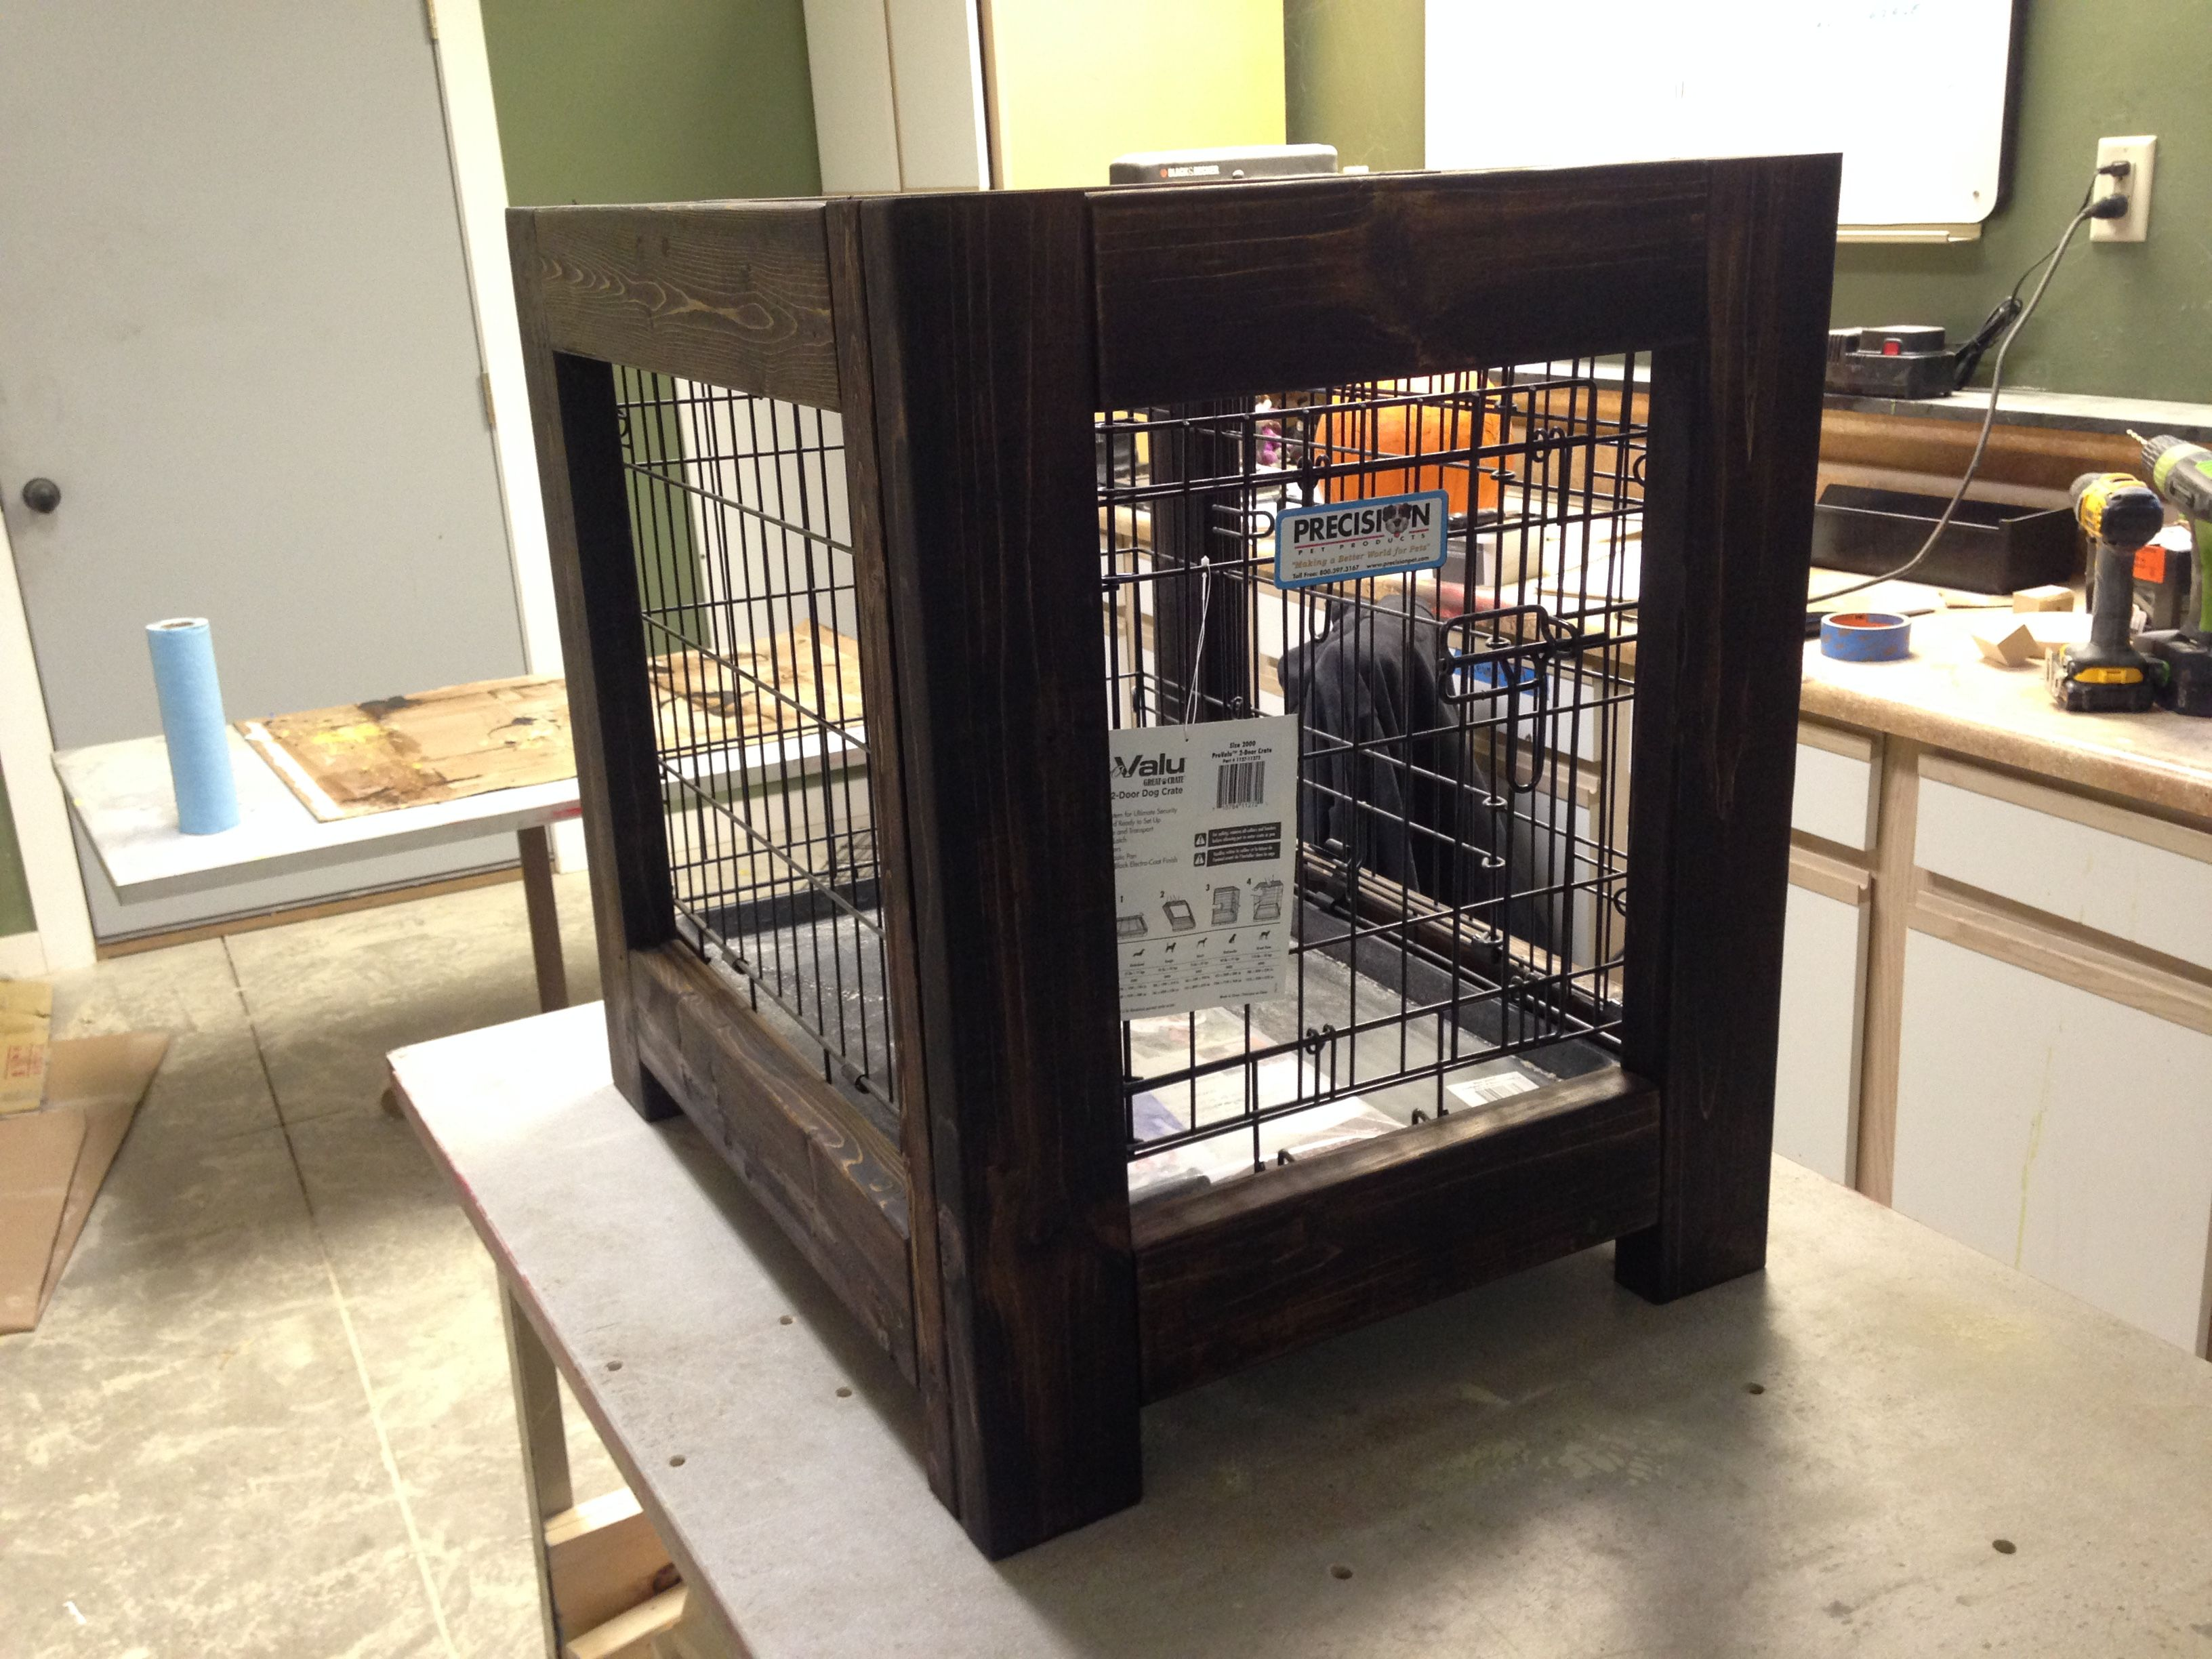 Offering The Same Fold Down Convenience Features As The Standard Model The Side Door On This Crate Allows You To Keep The Cage In A Dog Houses Crates Side Door